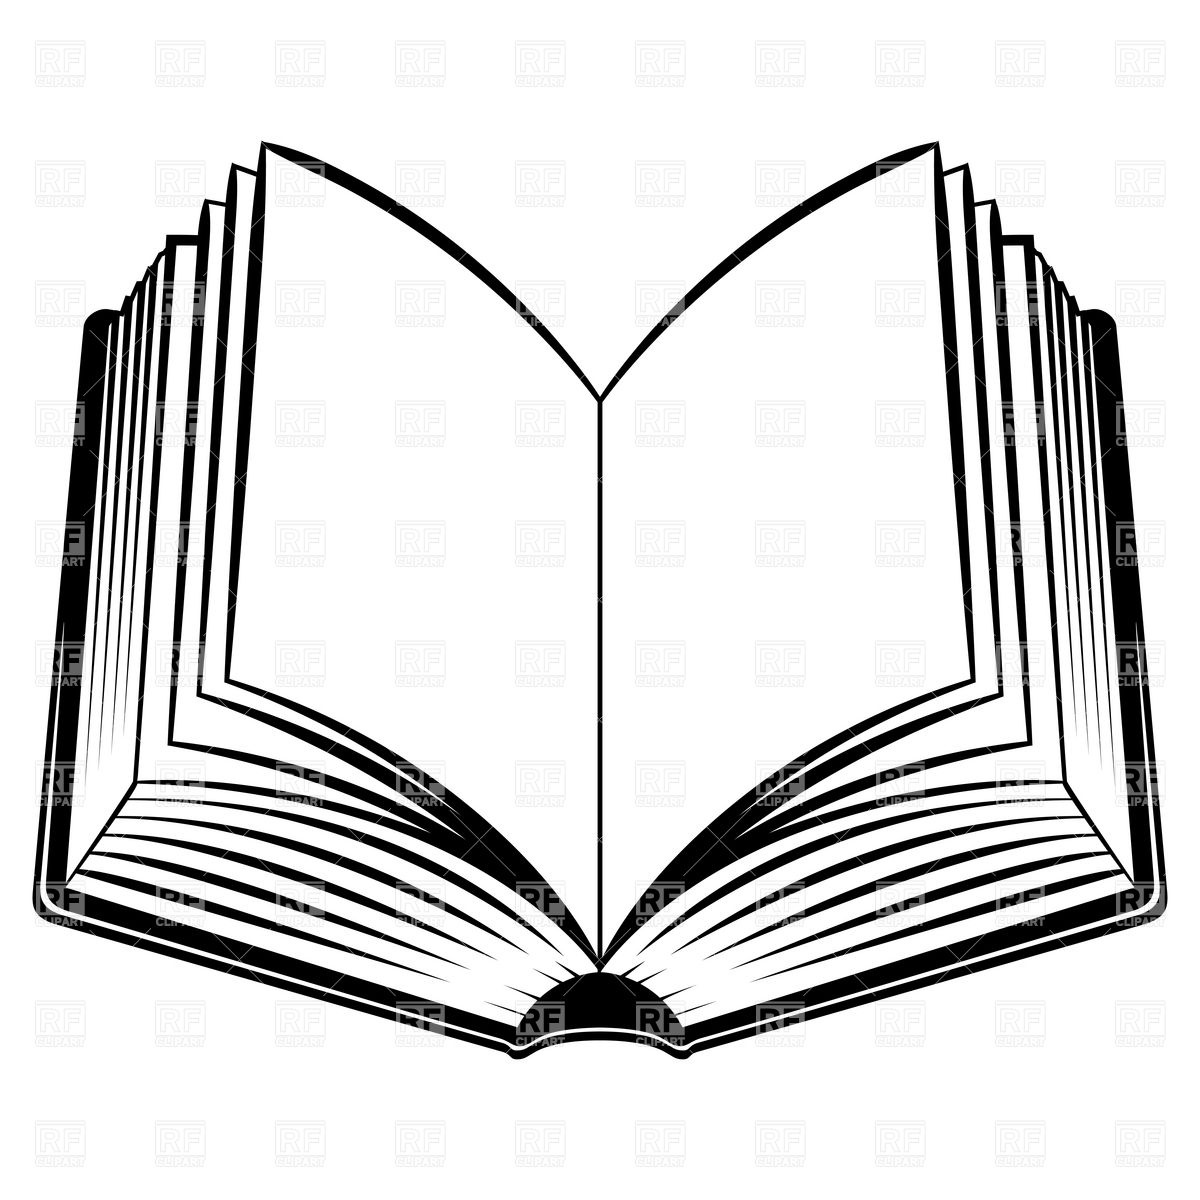 1200x1200 Open Book Outline Clipart Free Images 2